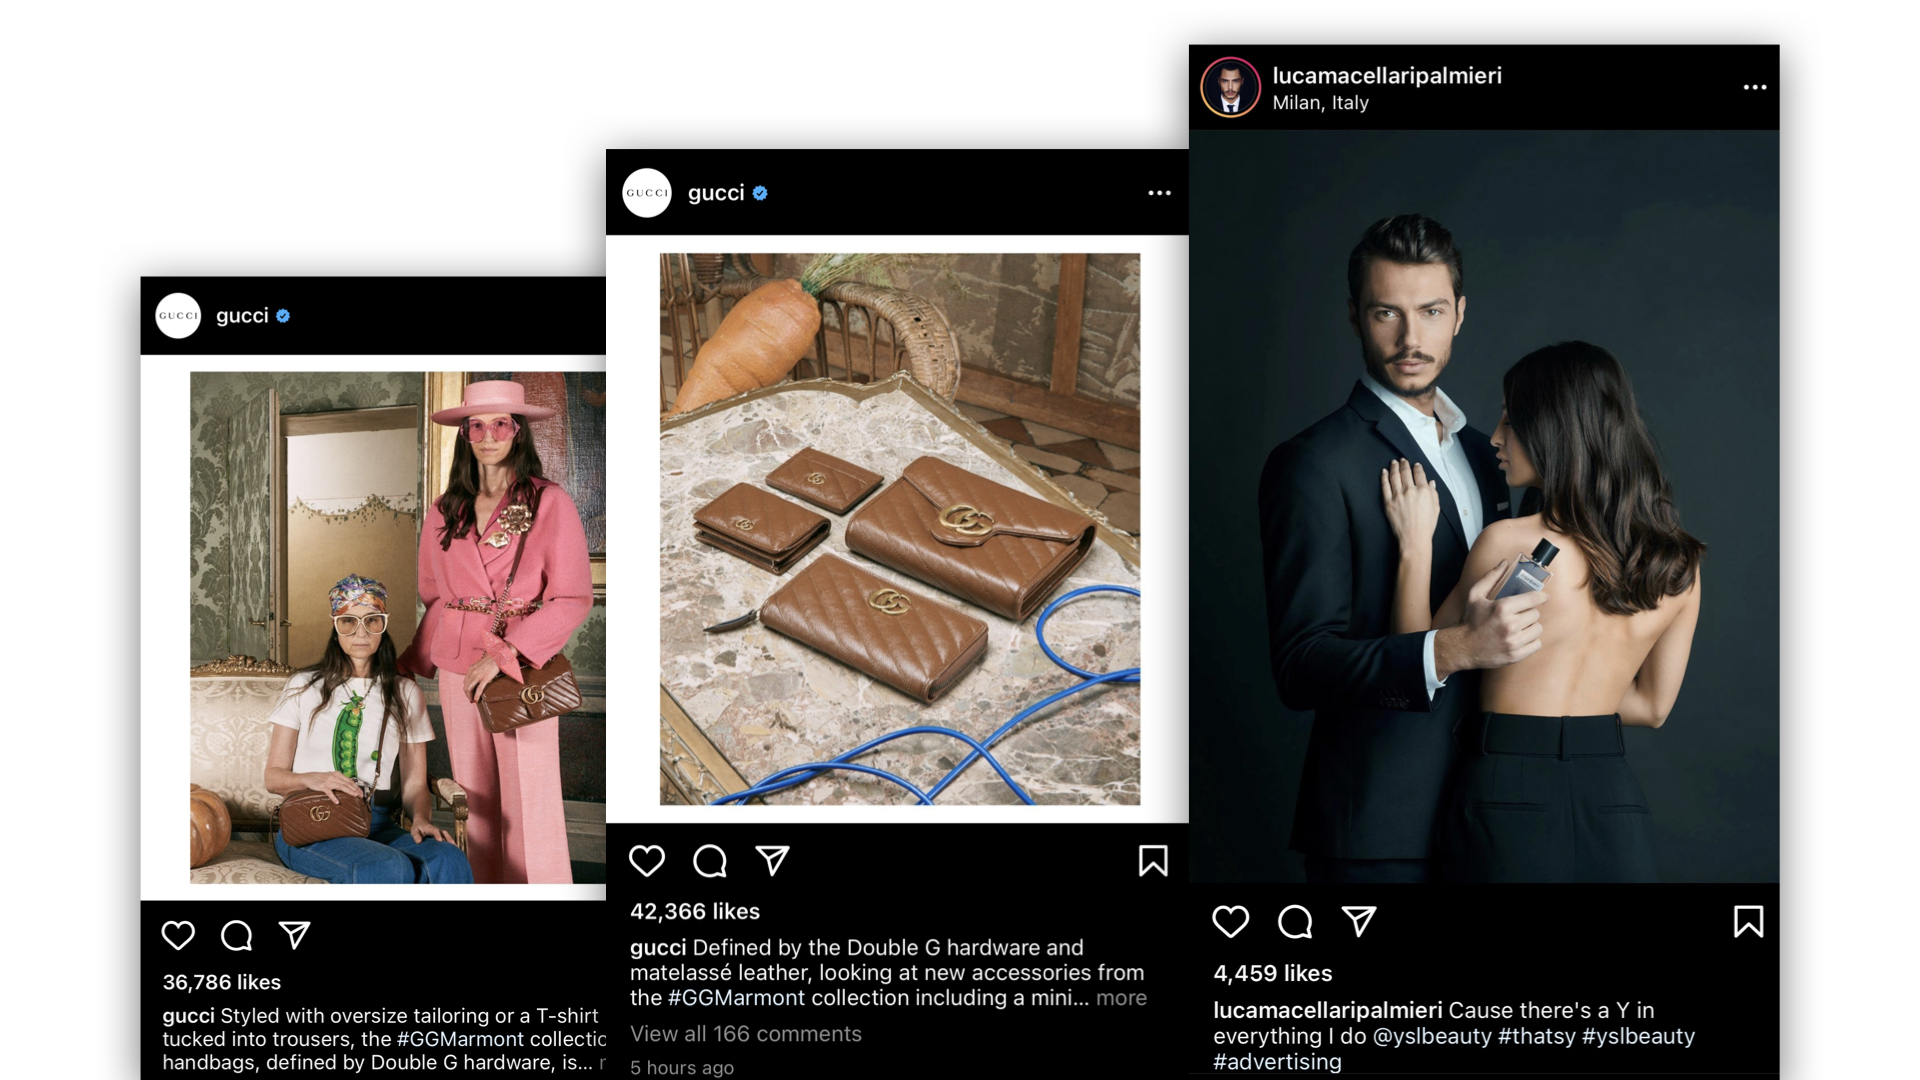 An advertising agency's take on Kering's marketing advertising strategy: Kering's social media savviness shows in its understanding of visual and personal appeal.